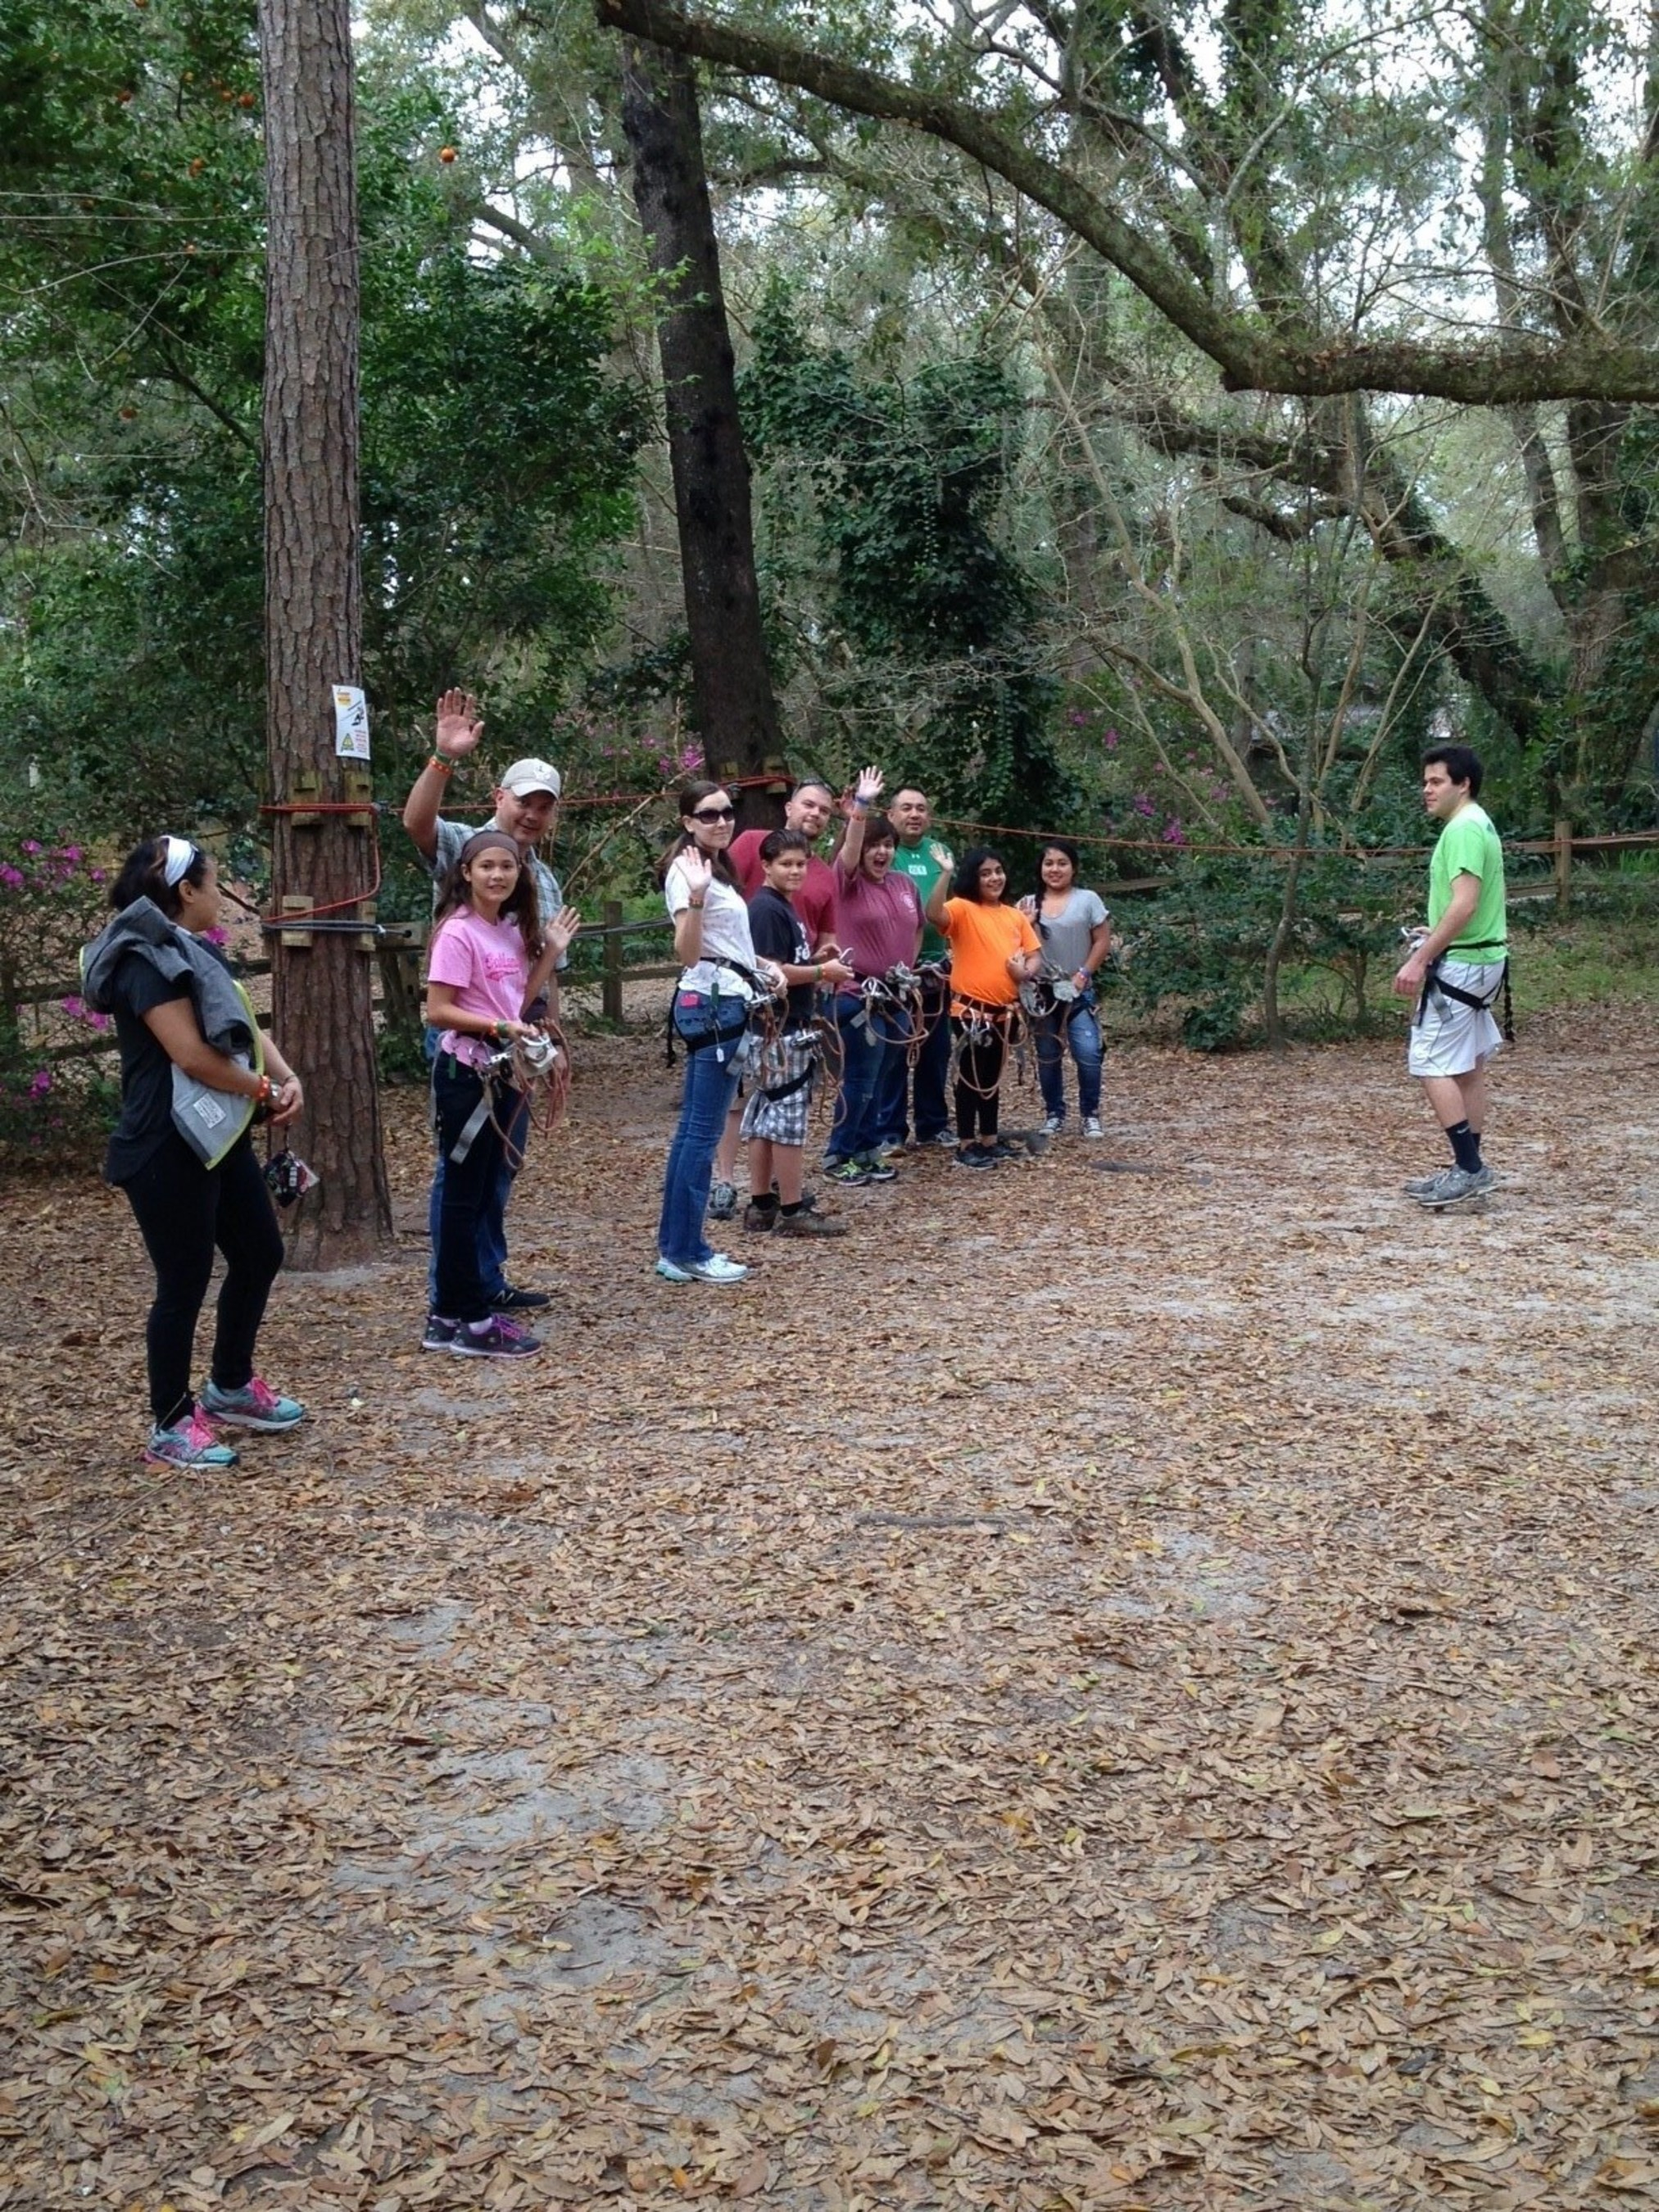 Wounded veterans and their families prepare to zip line at Tallahassee Museum.